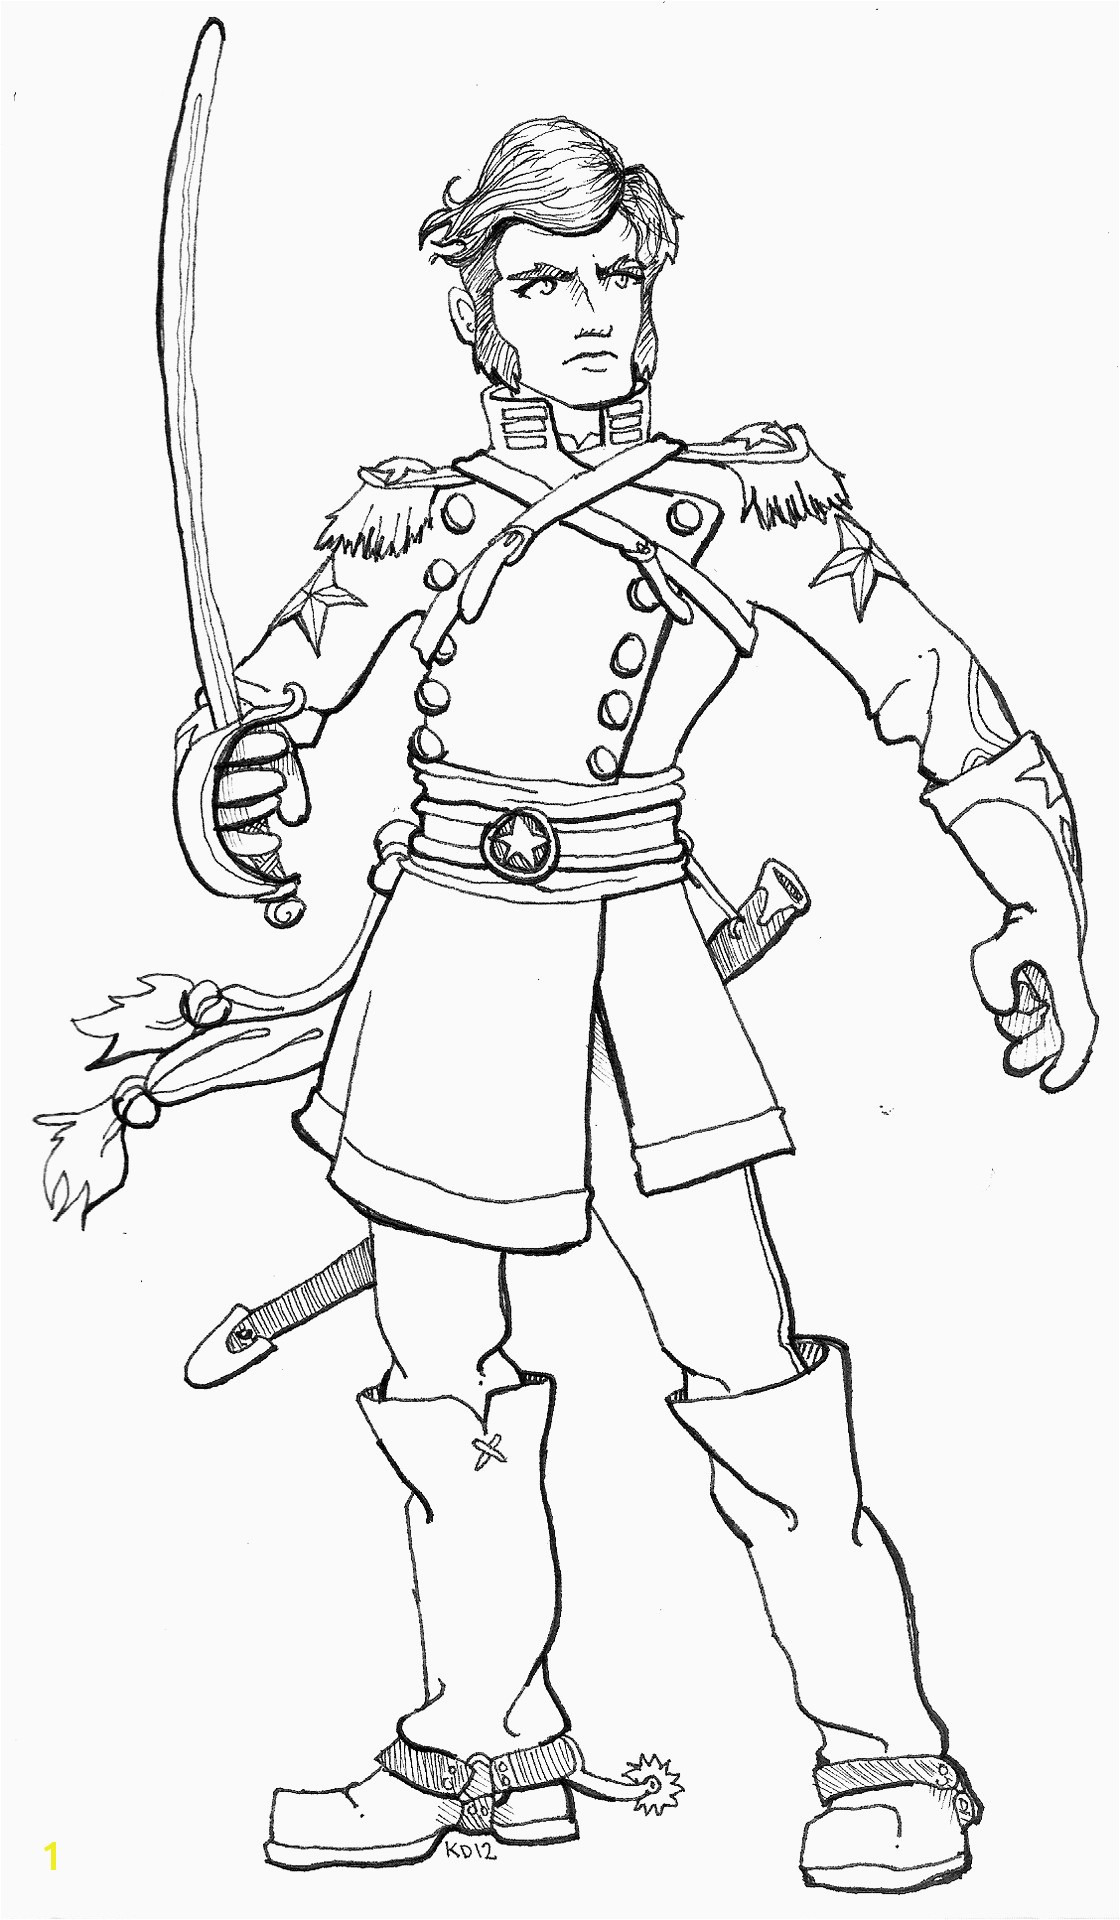 Lego Lone Ranger Coloring Pages Ninjago Free Printable Coloring Pages Coloring Pages